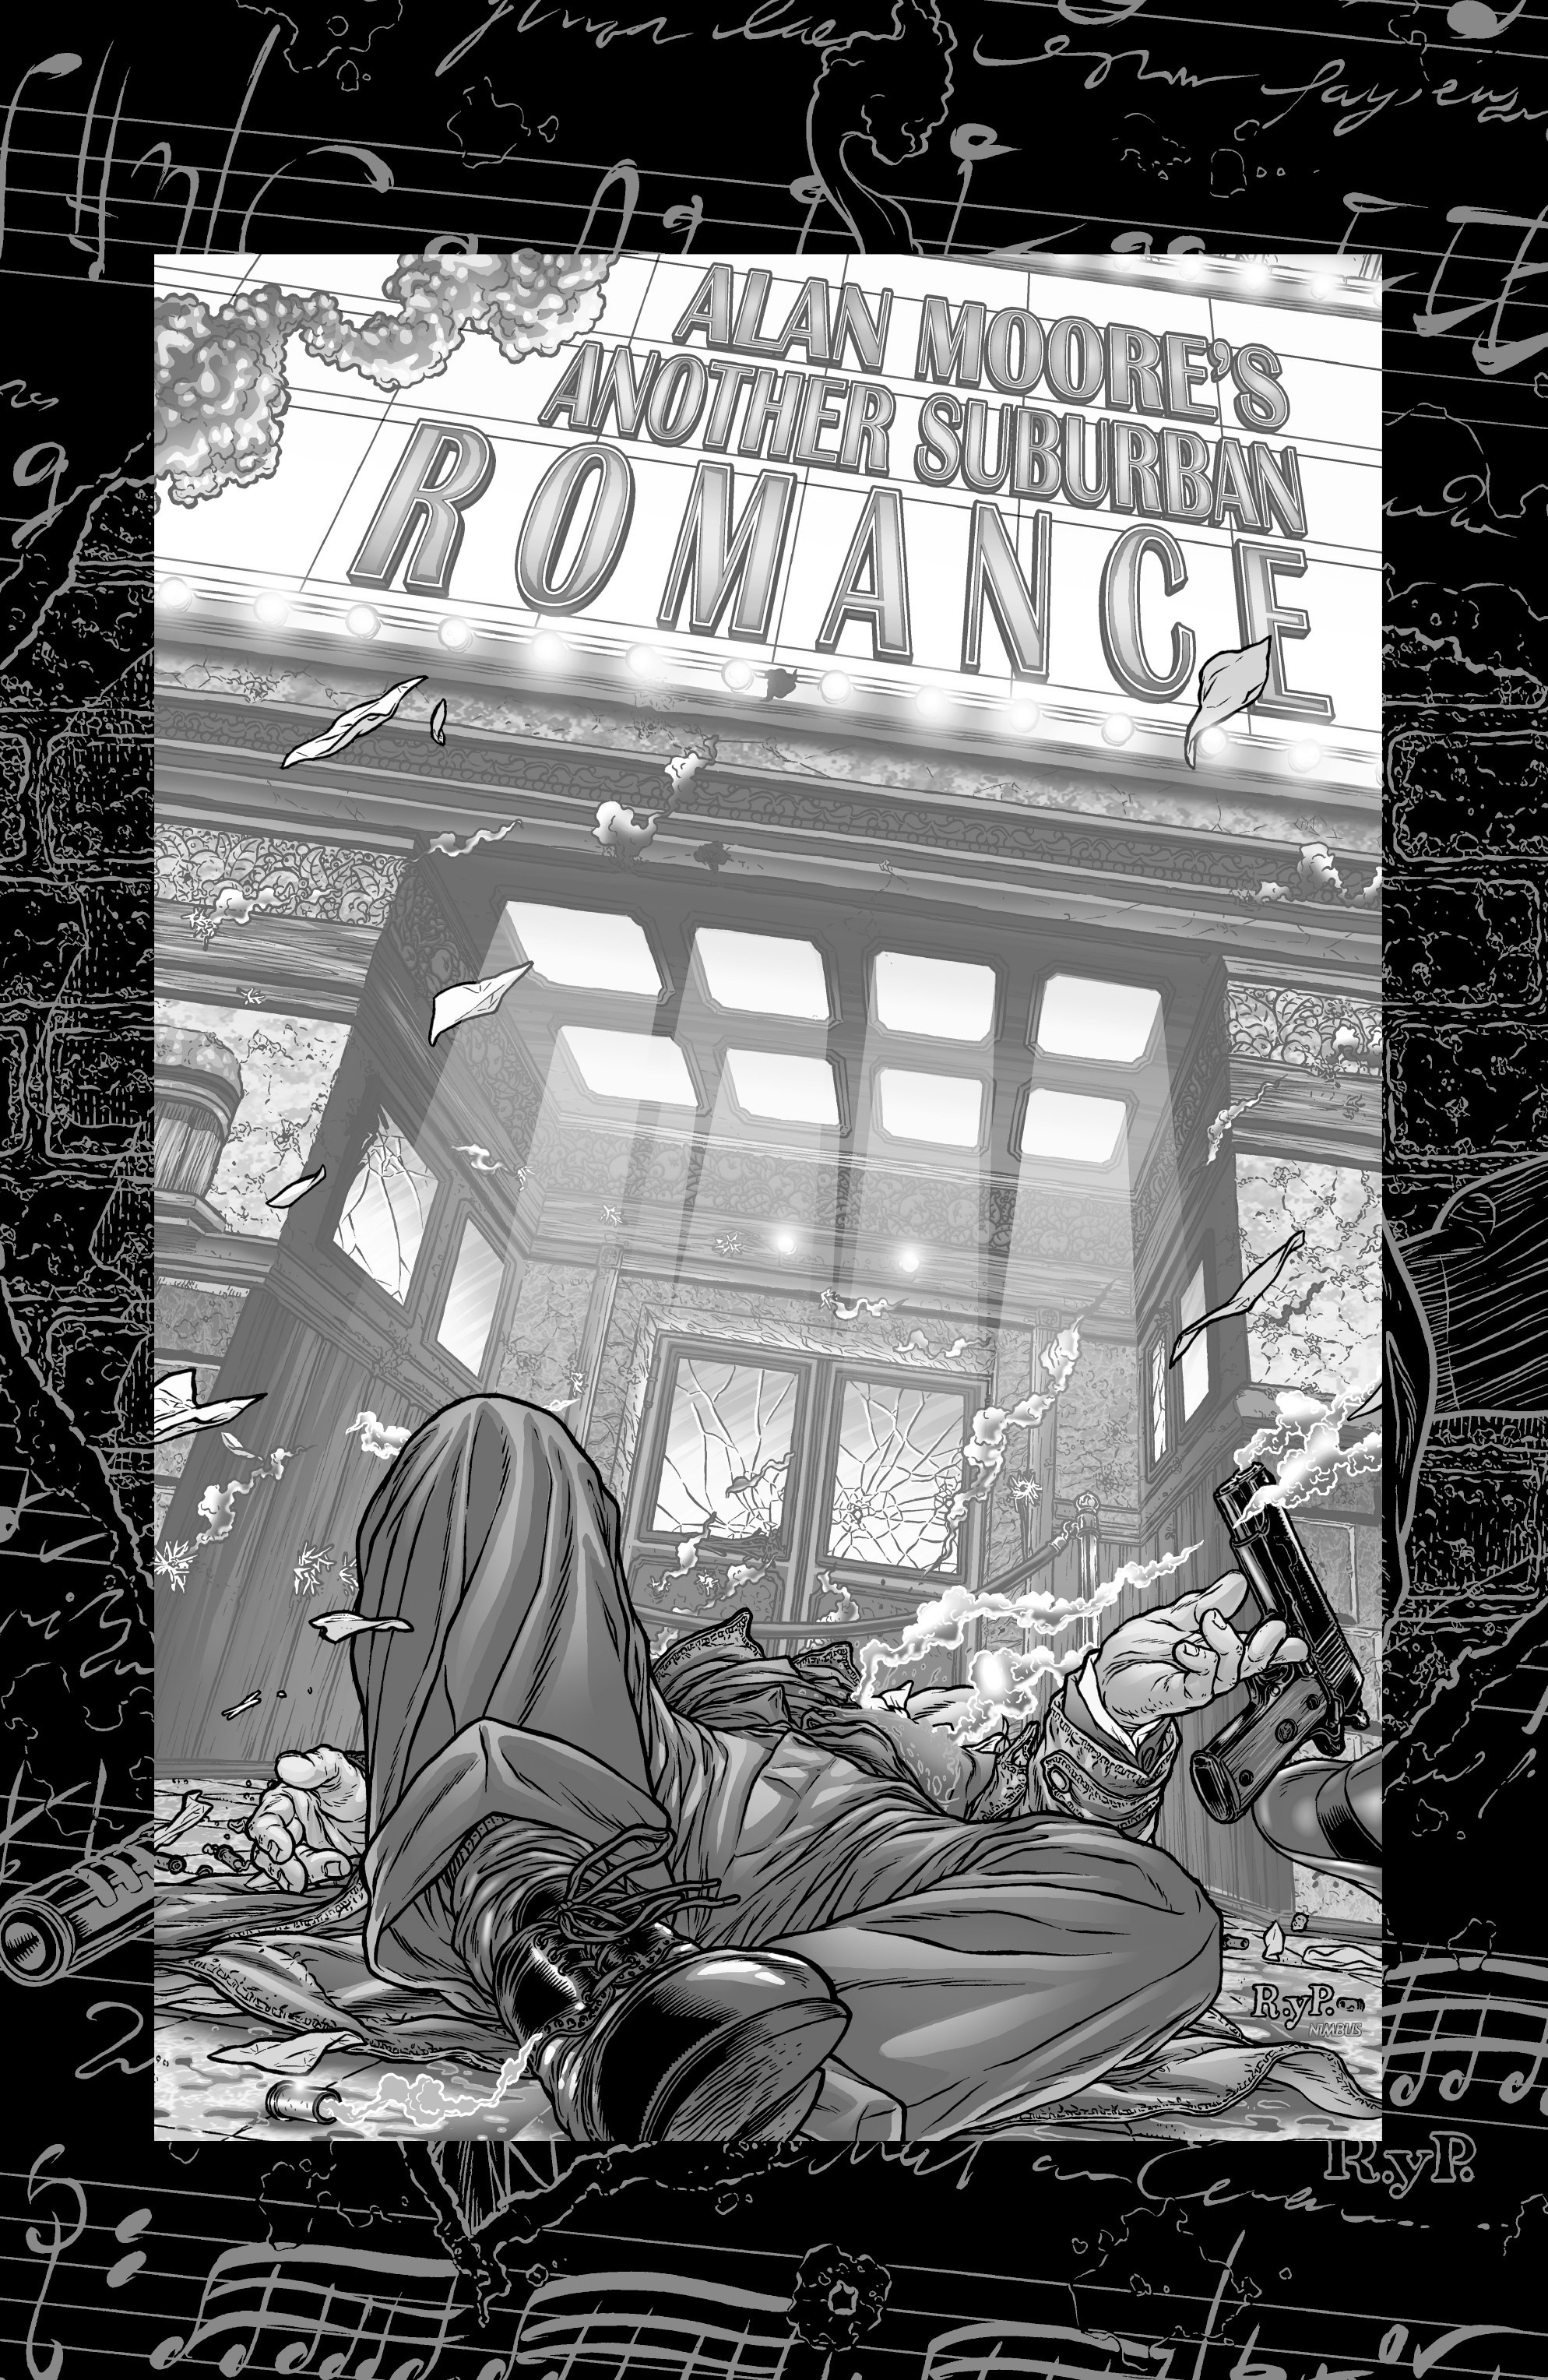 Read online Alan Moore's Another Suburban Romance comic -  Issue #Alan Moore's Another Suburban Romance Full - 2